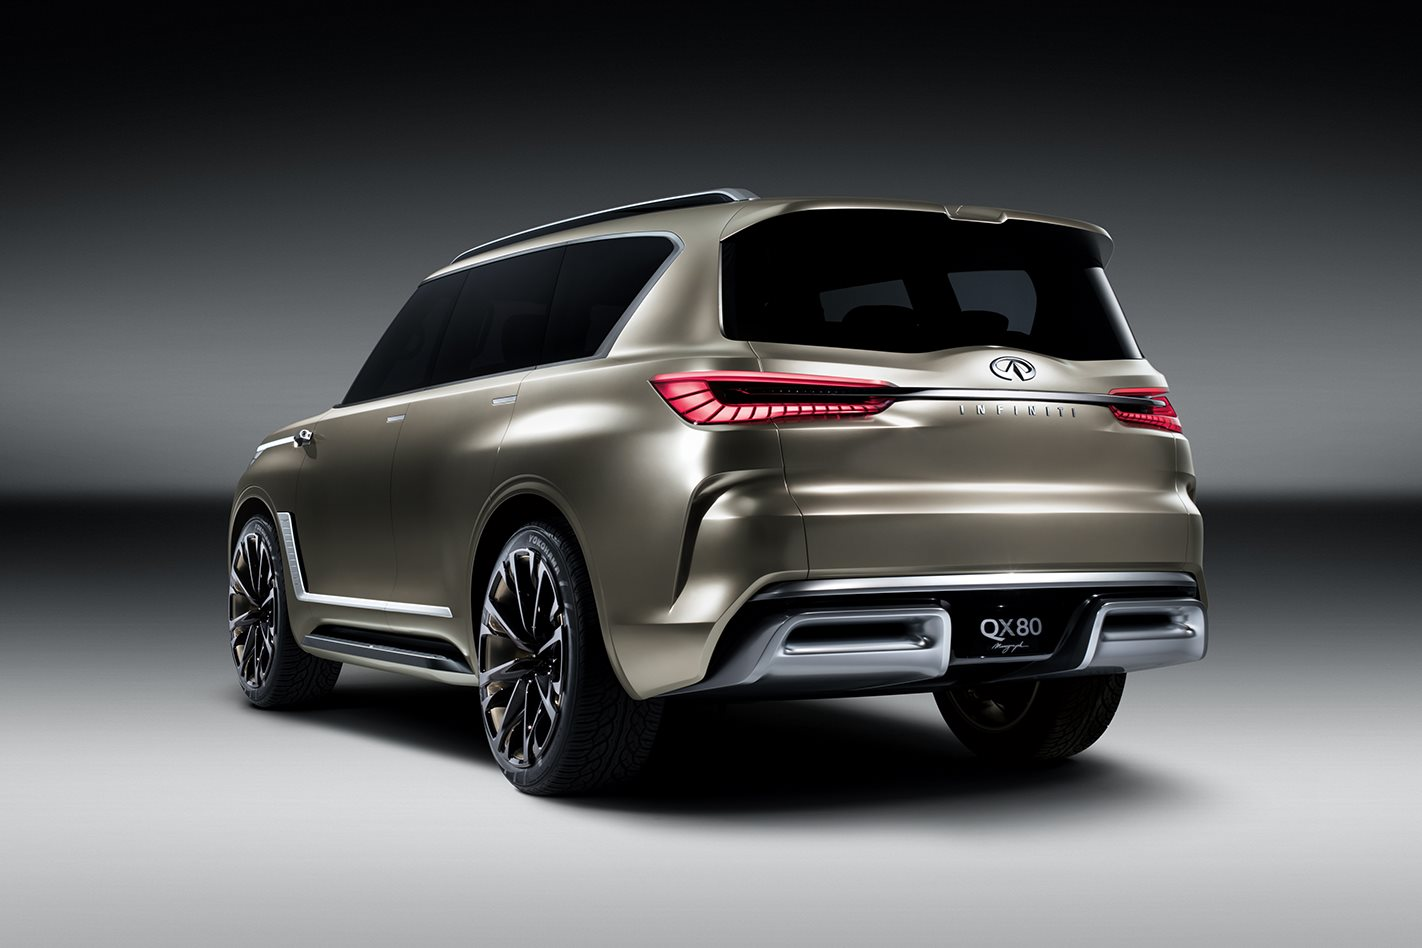 Used Infiniti Qx80 >> Infiniti QX80 concept points to future Infiniti look | Wheels